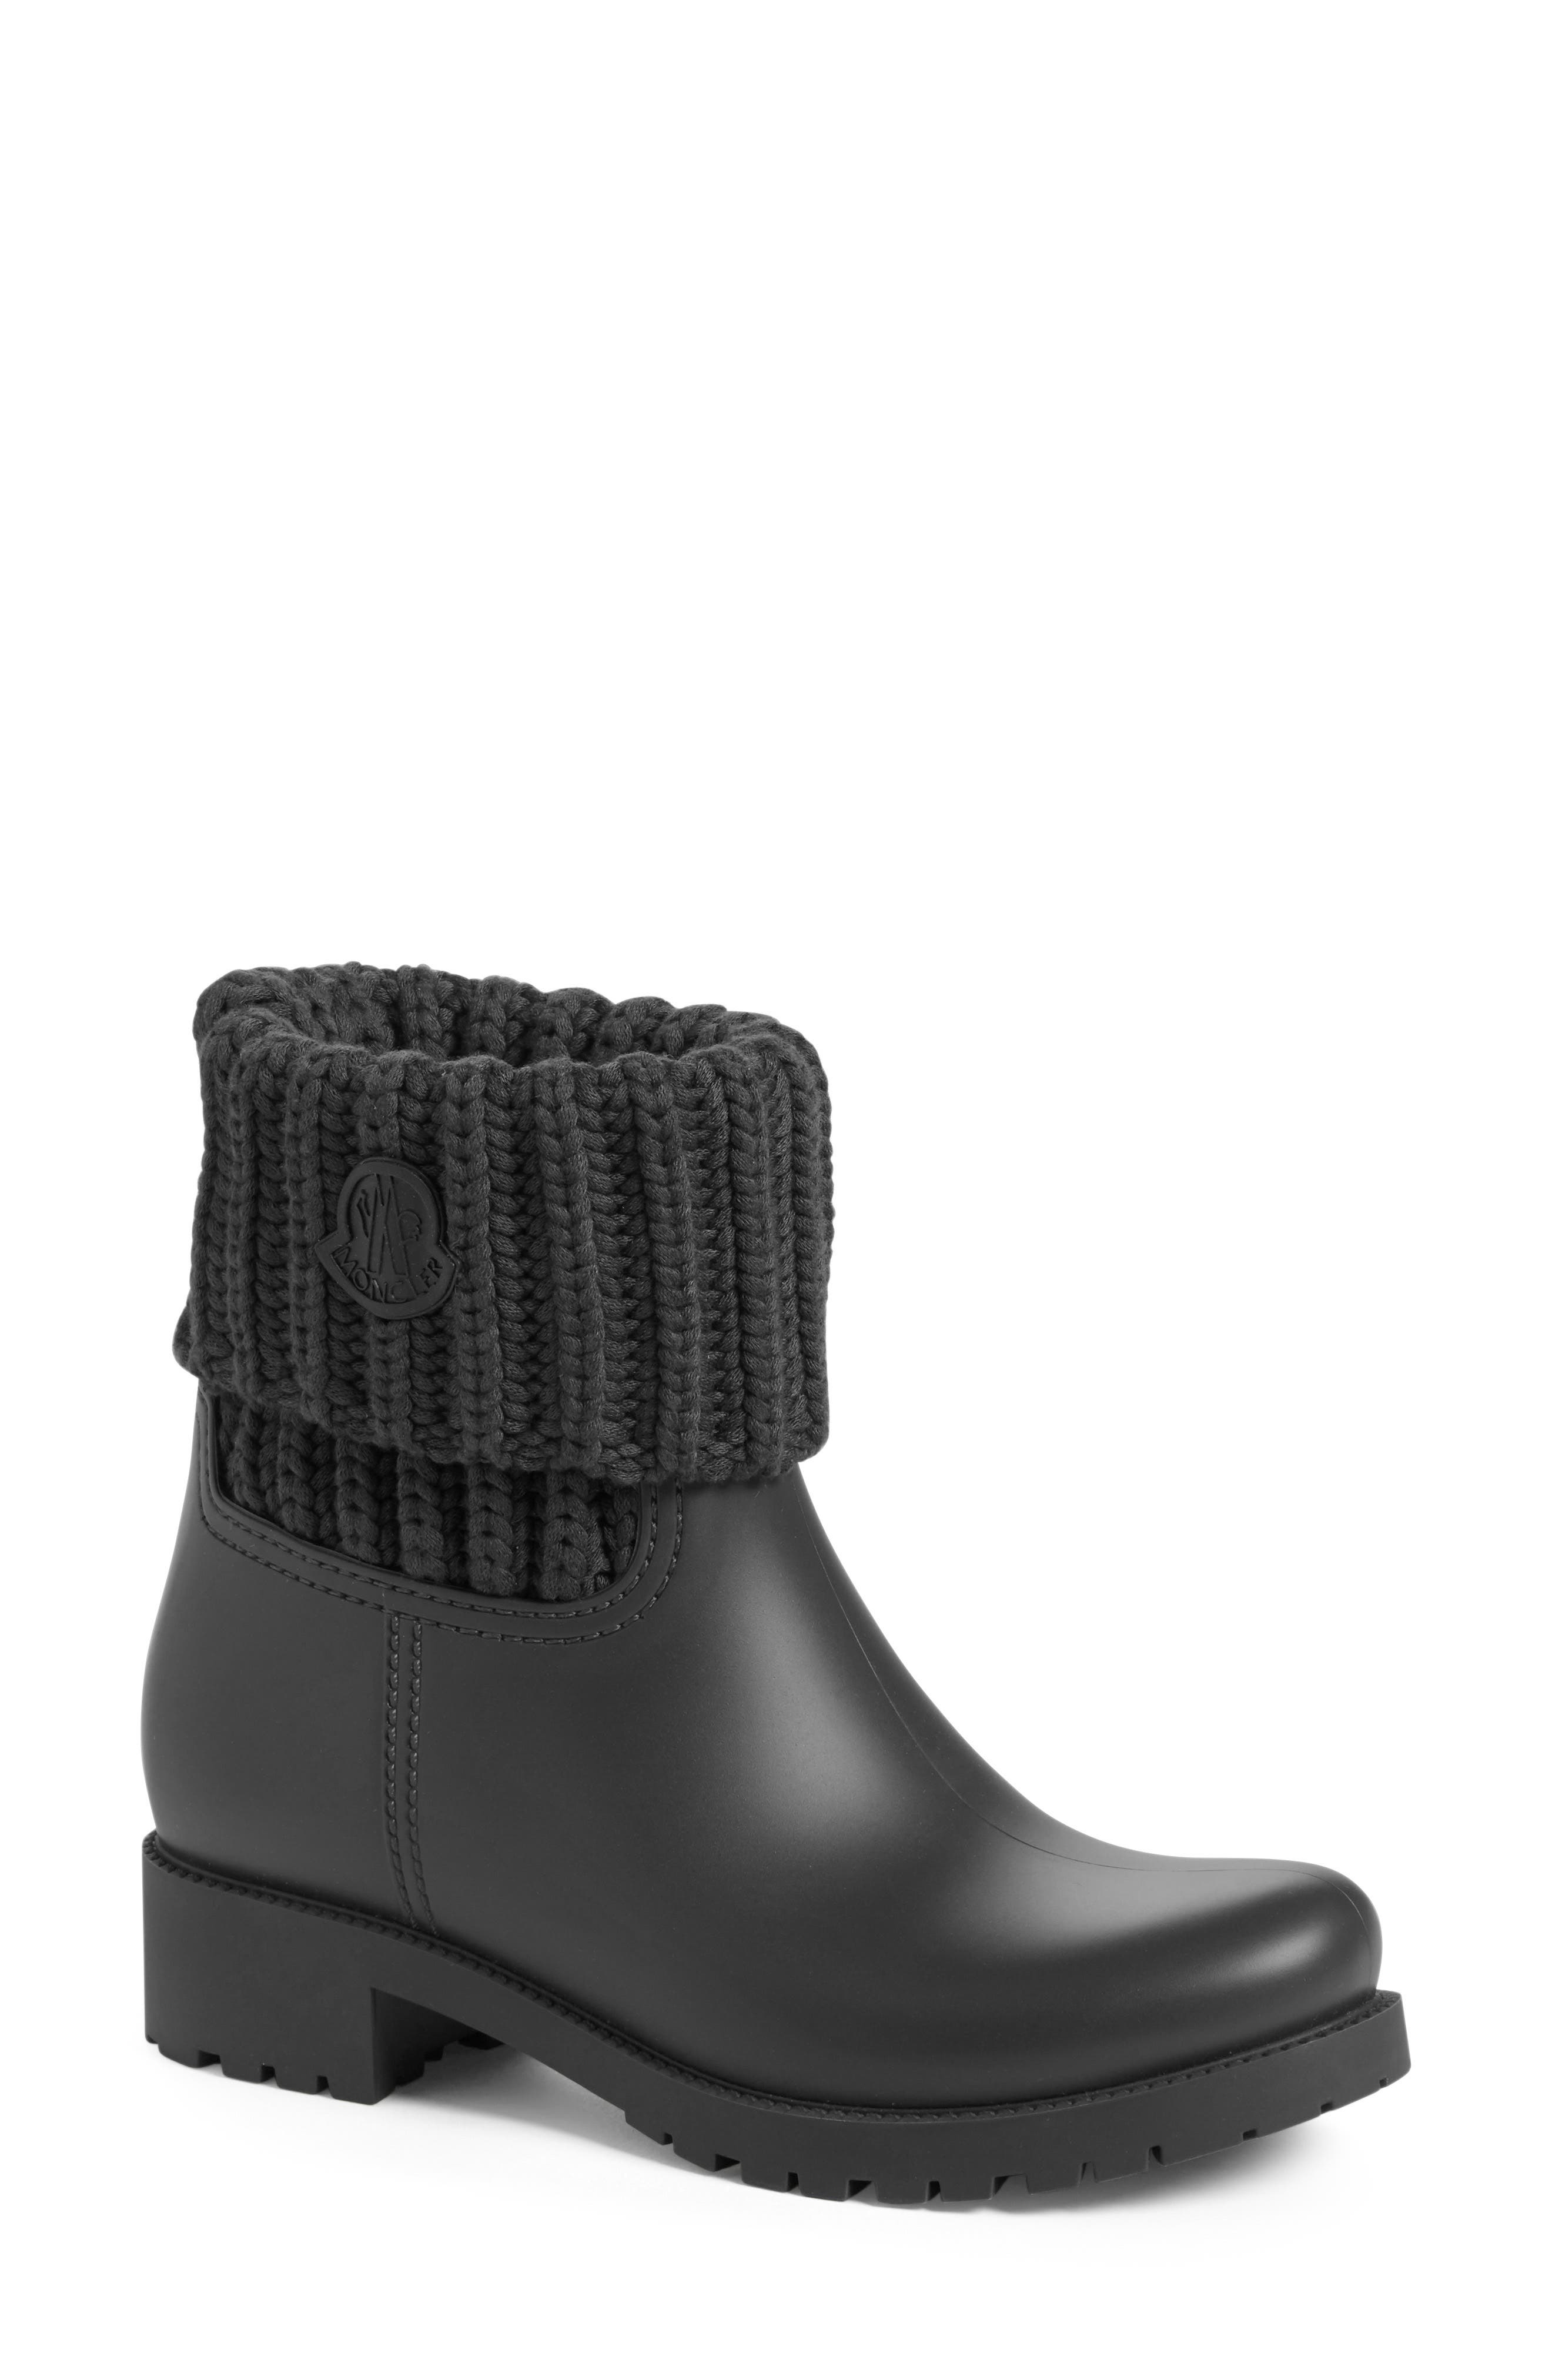 Ginette Knit Cuff Leather Rain Boot,                             Main thumbnail 1, color,                             002